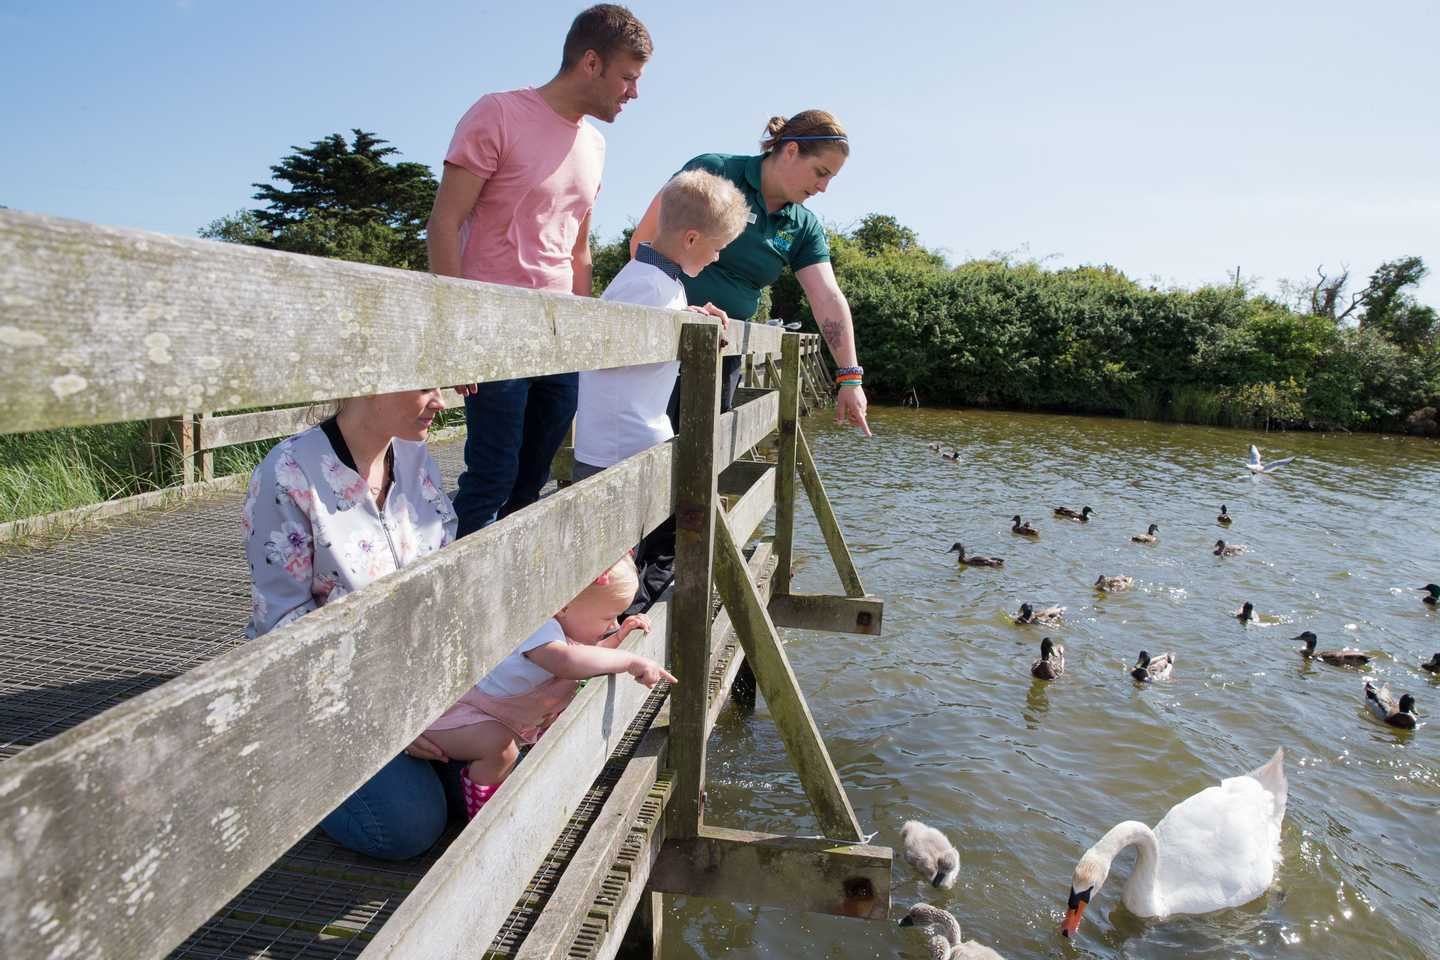 Guests feeding the ducks